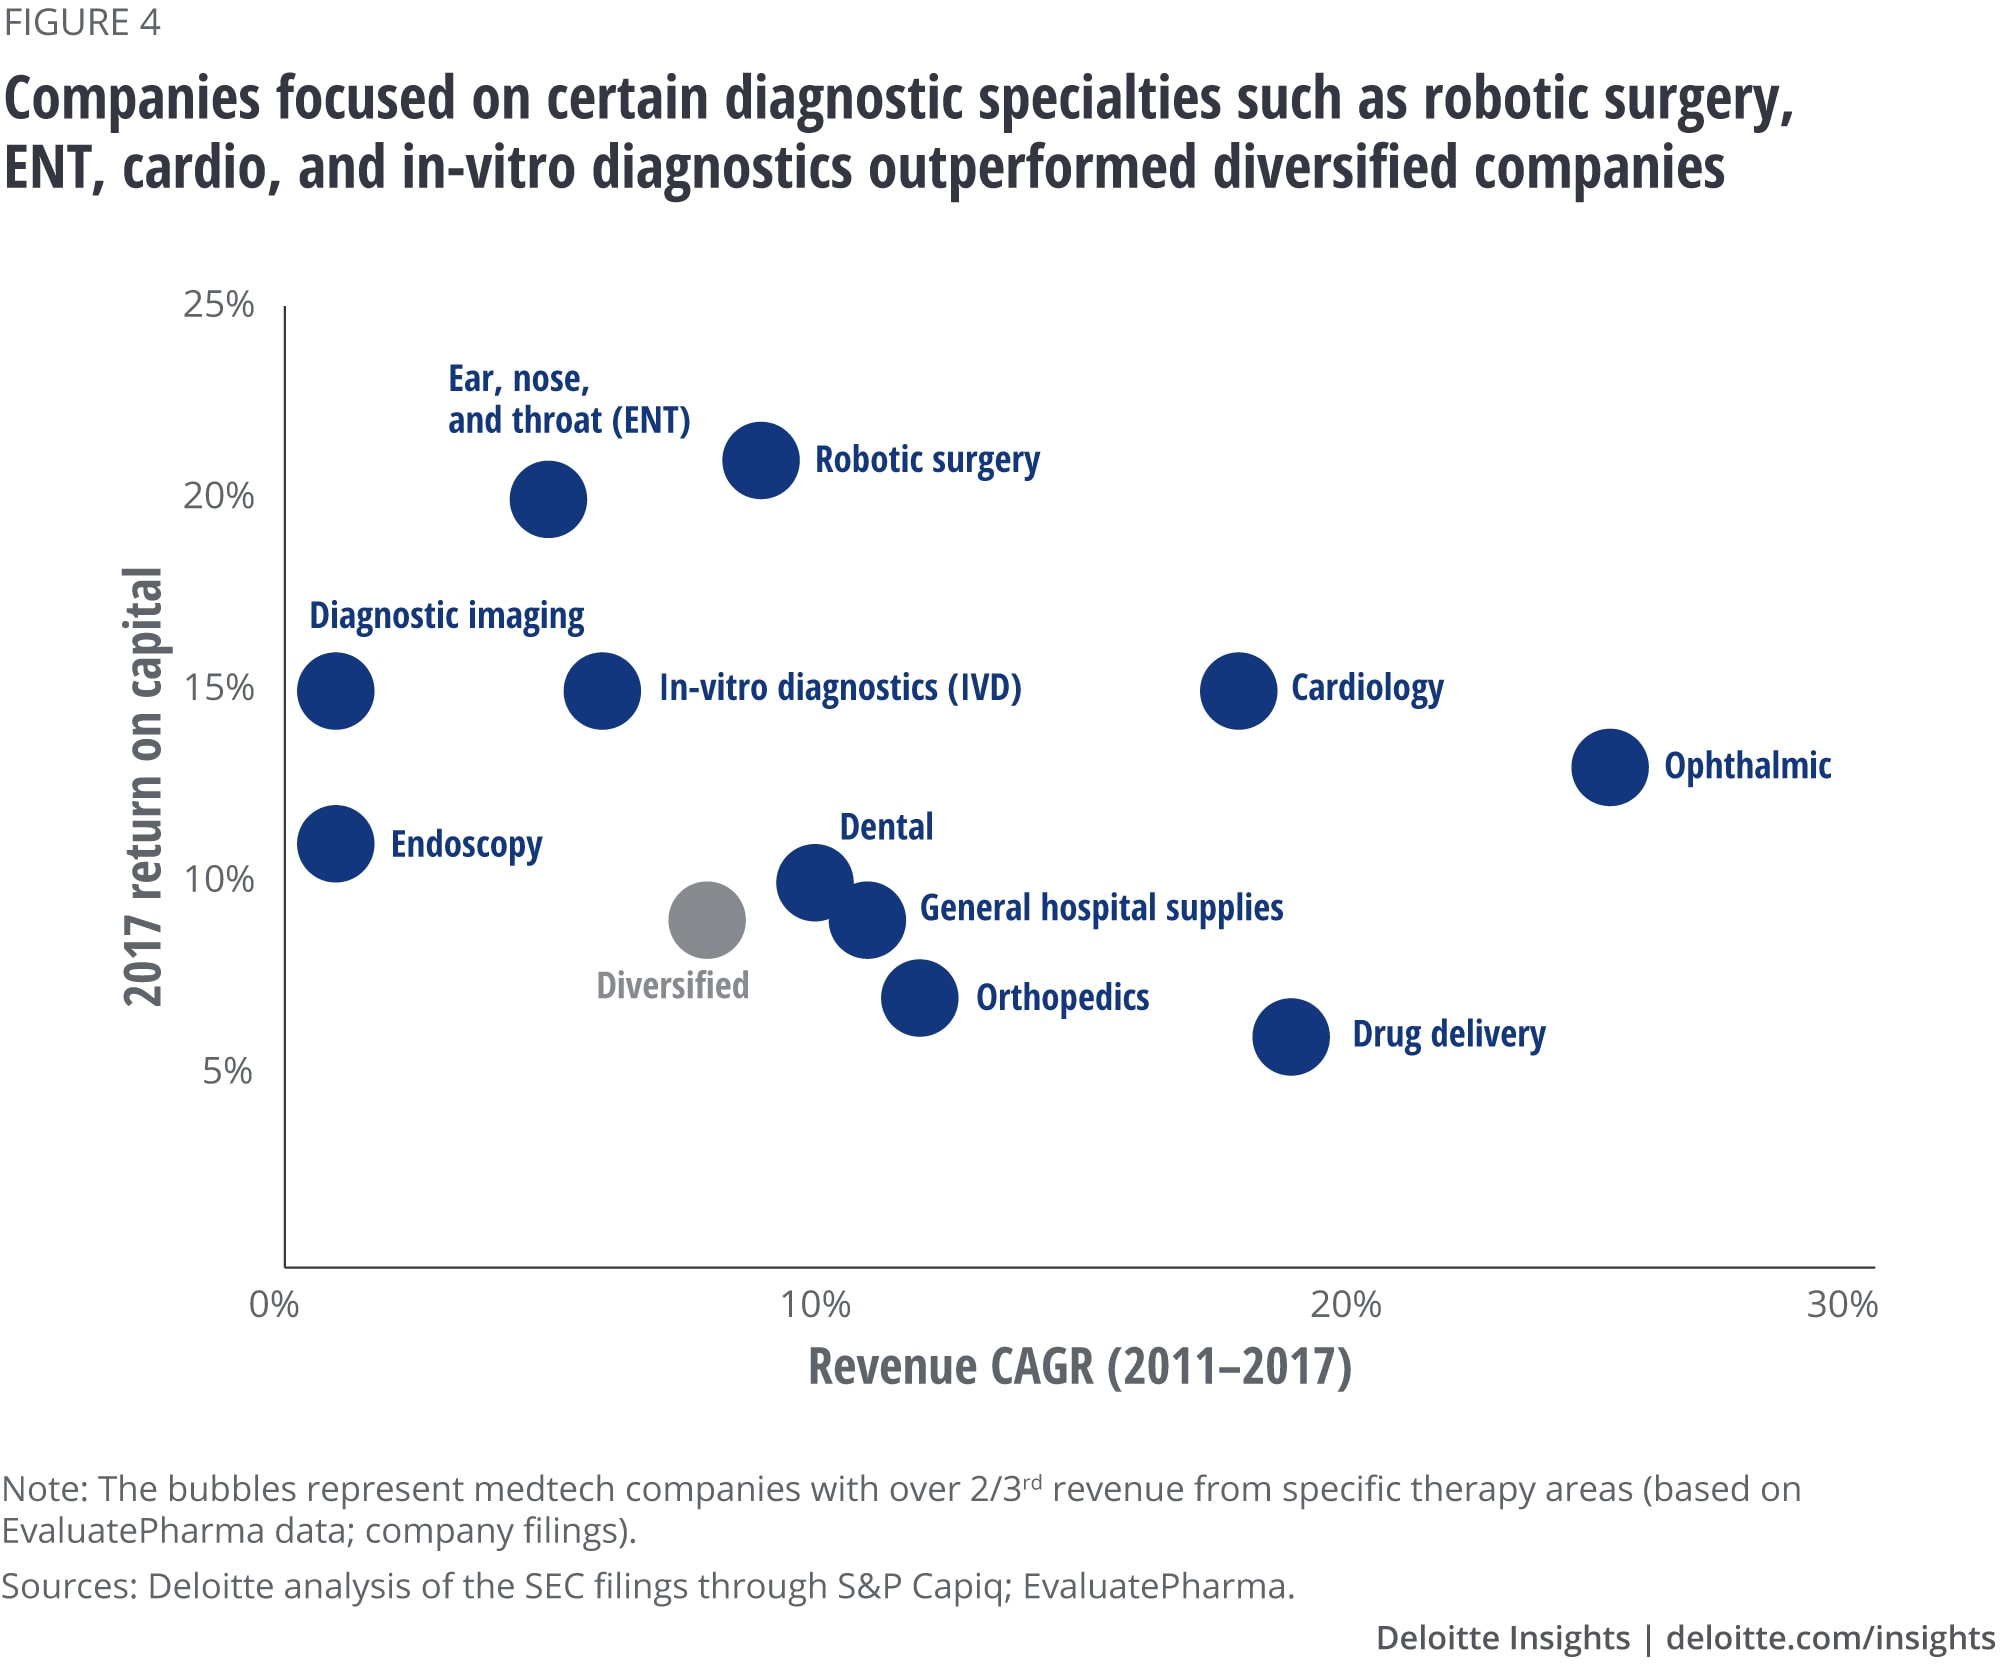 Companies focused on certain diagnostic specialties such as robotic surgery, ENT, cardio, and in-vitro diagnostics outperformed diversified companies